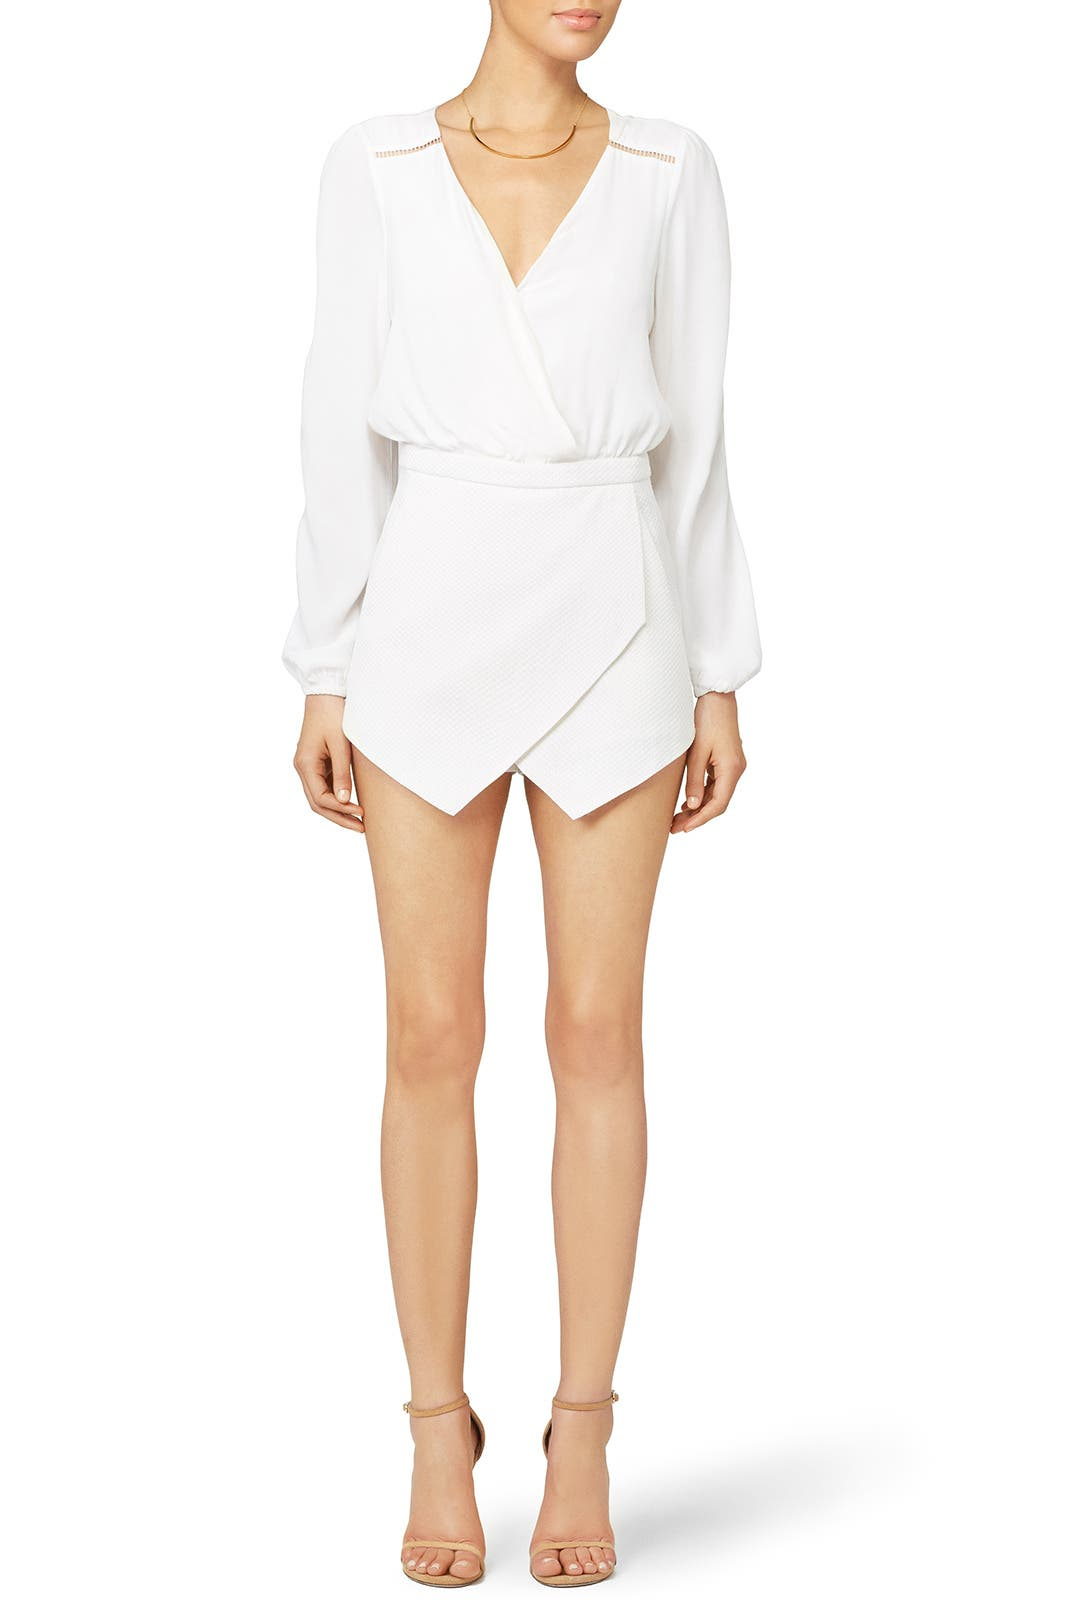 fbe04d27b453 Radiance Romper by Lovers + Friends for  35 -  50